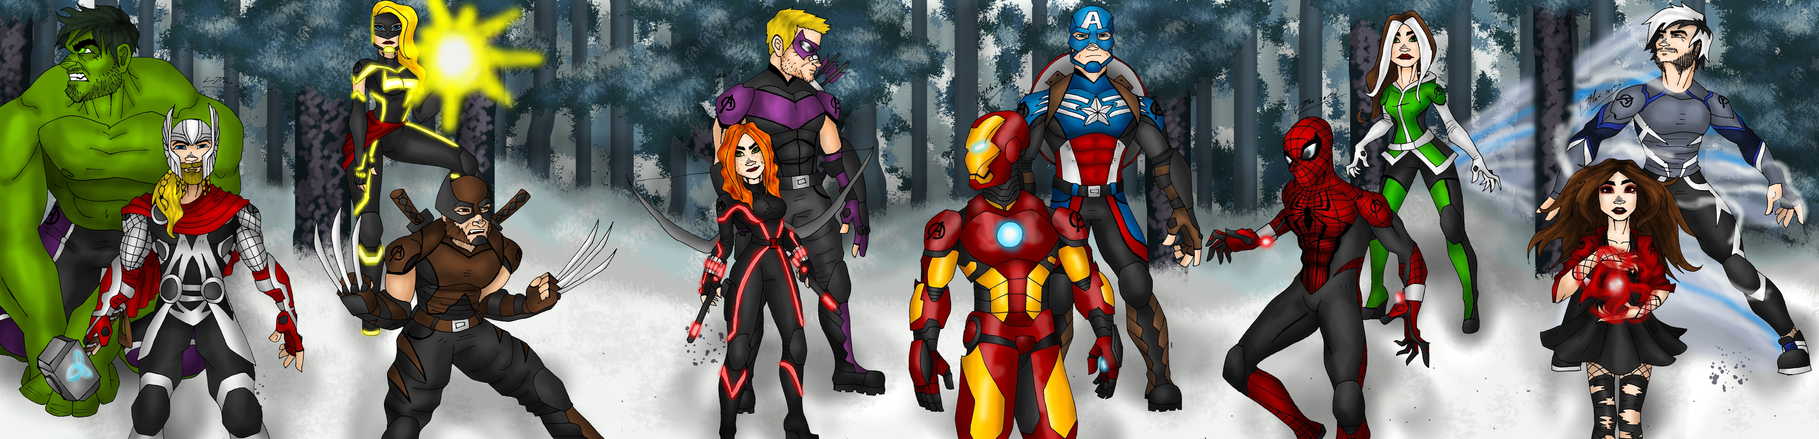 Avengers Age Of Ultron By Iloegbunam On Deviantart: Avengers Age Of Ultron By Hlontro On DeviantArt